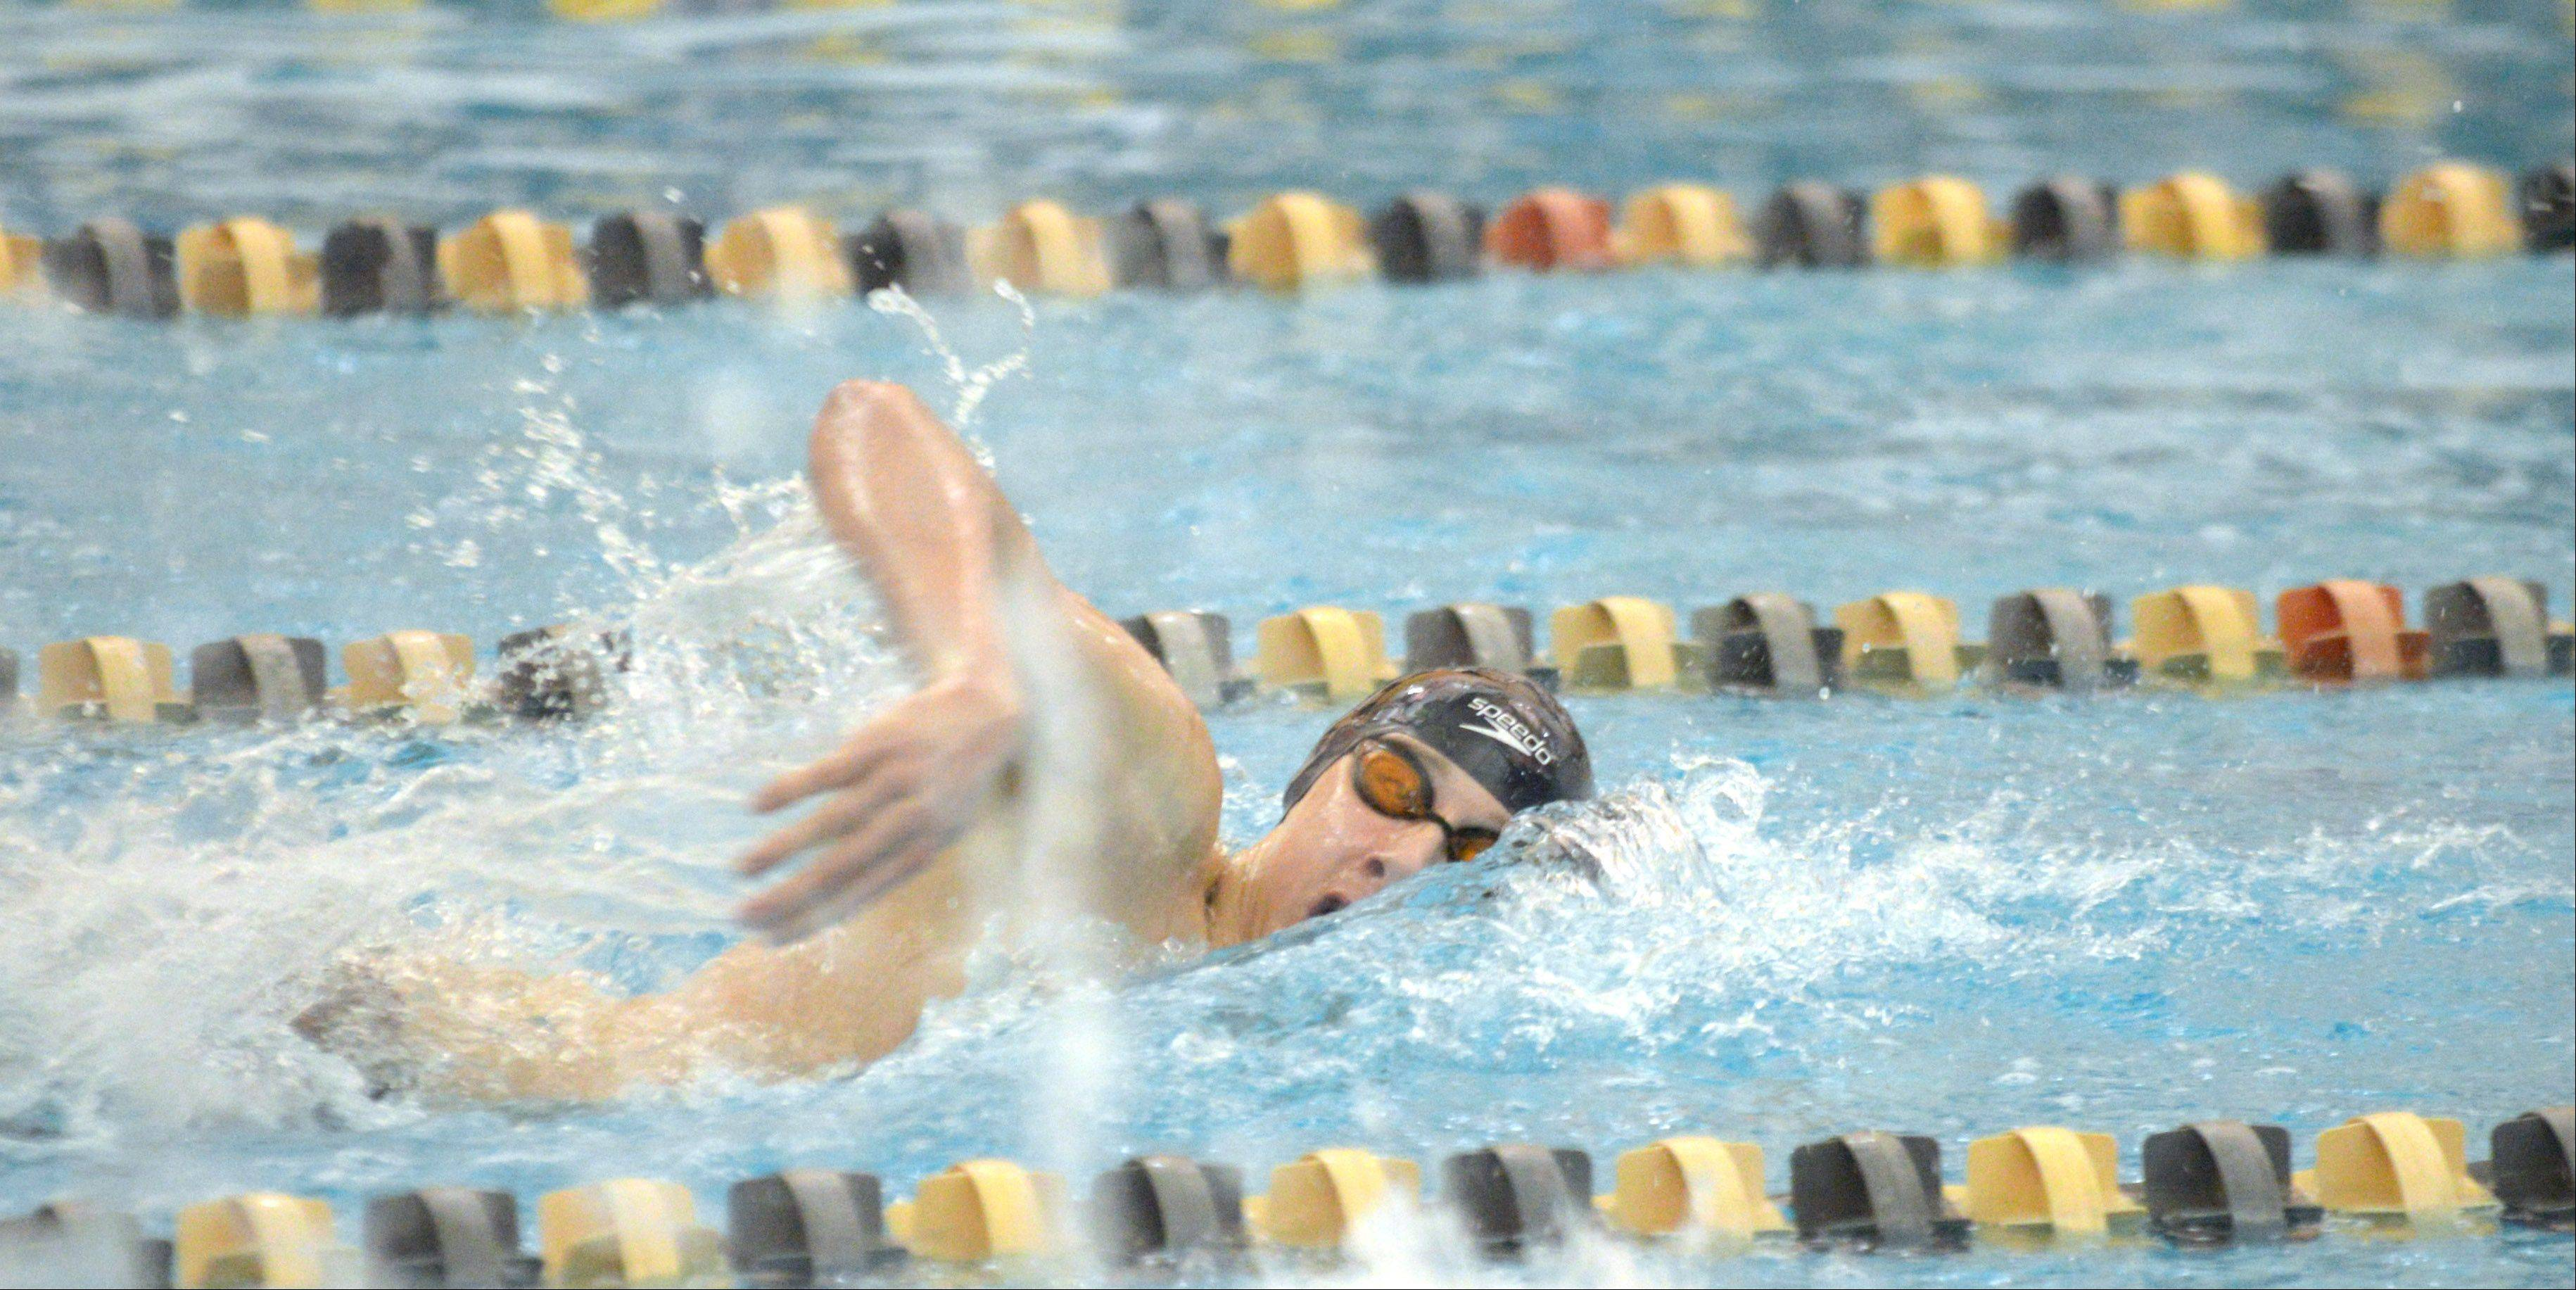 Andrew Kasper of Marmion swims the 200 free at the Neuqua Valley boys swimming sectional in Naperville Saturday.